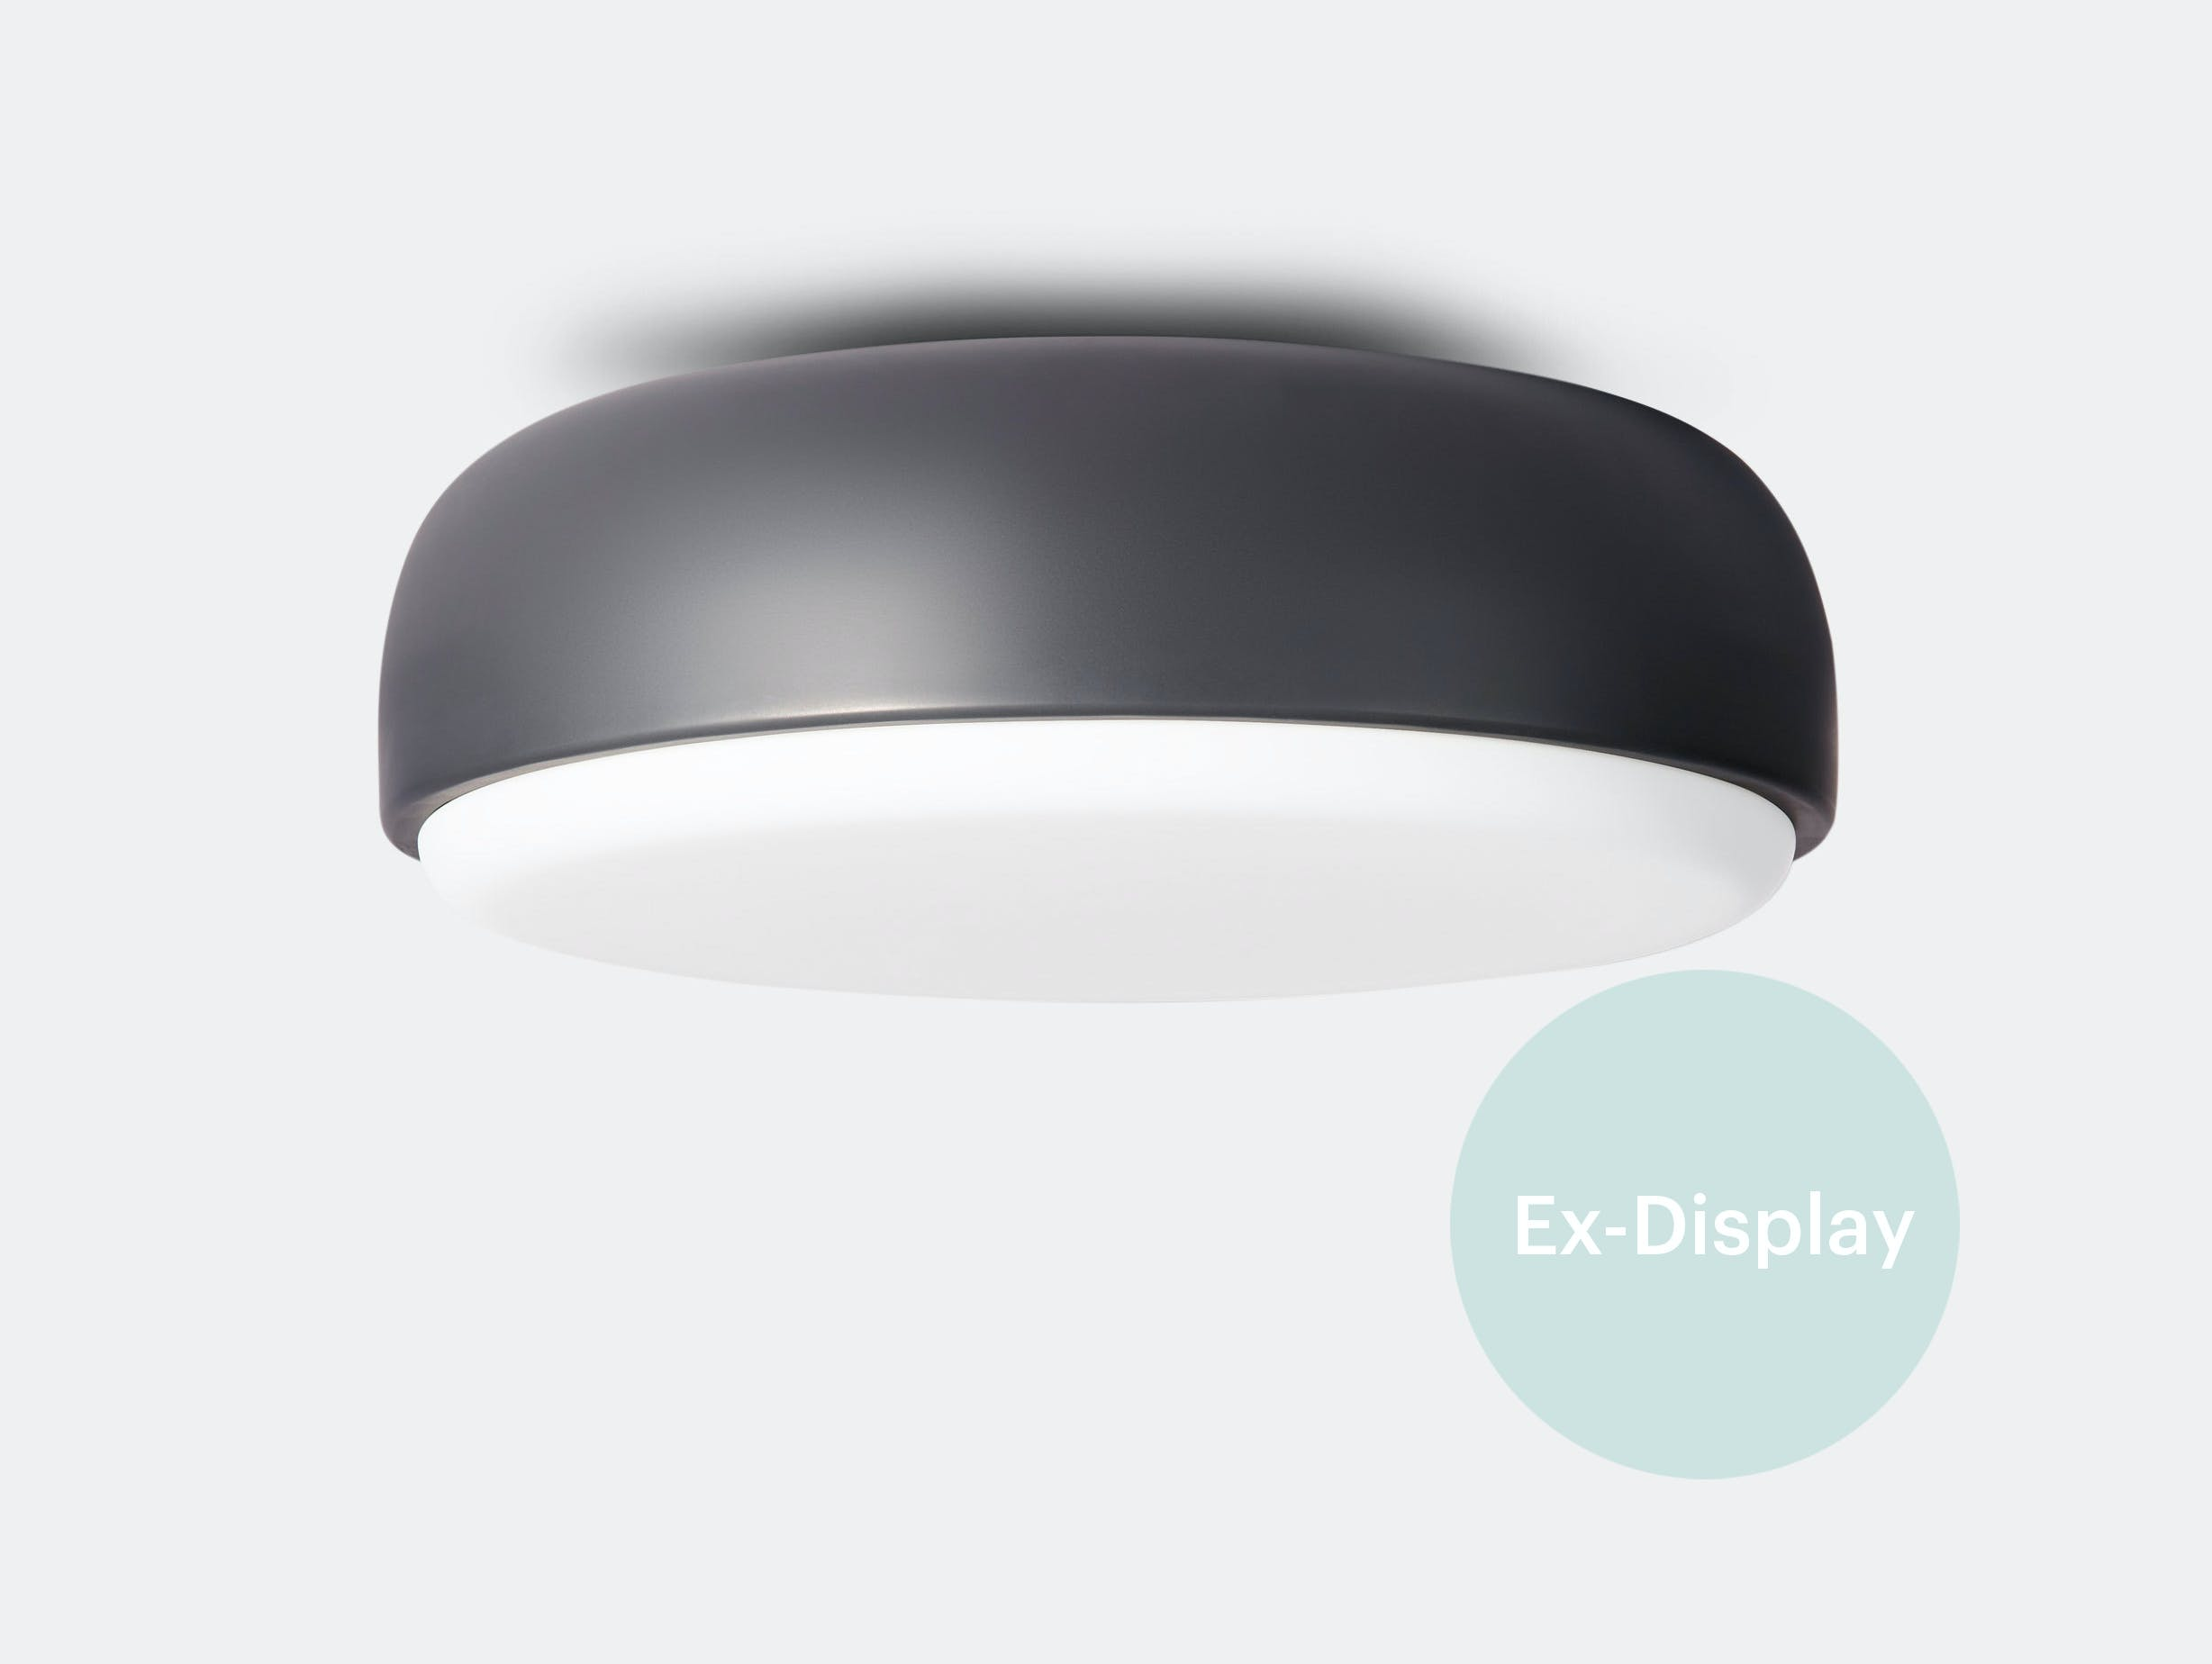 Xdp northern over me wall lamp 40 dk grey